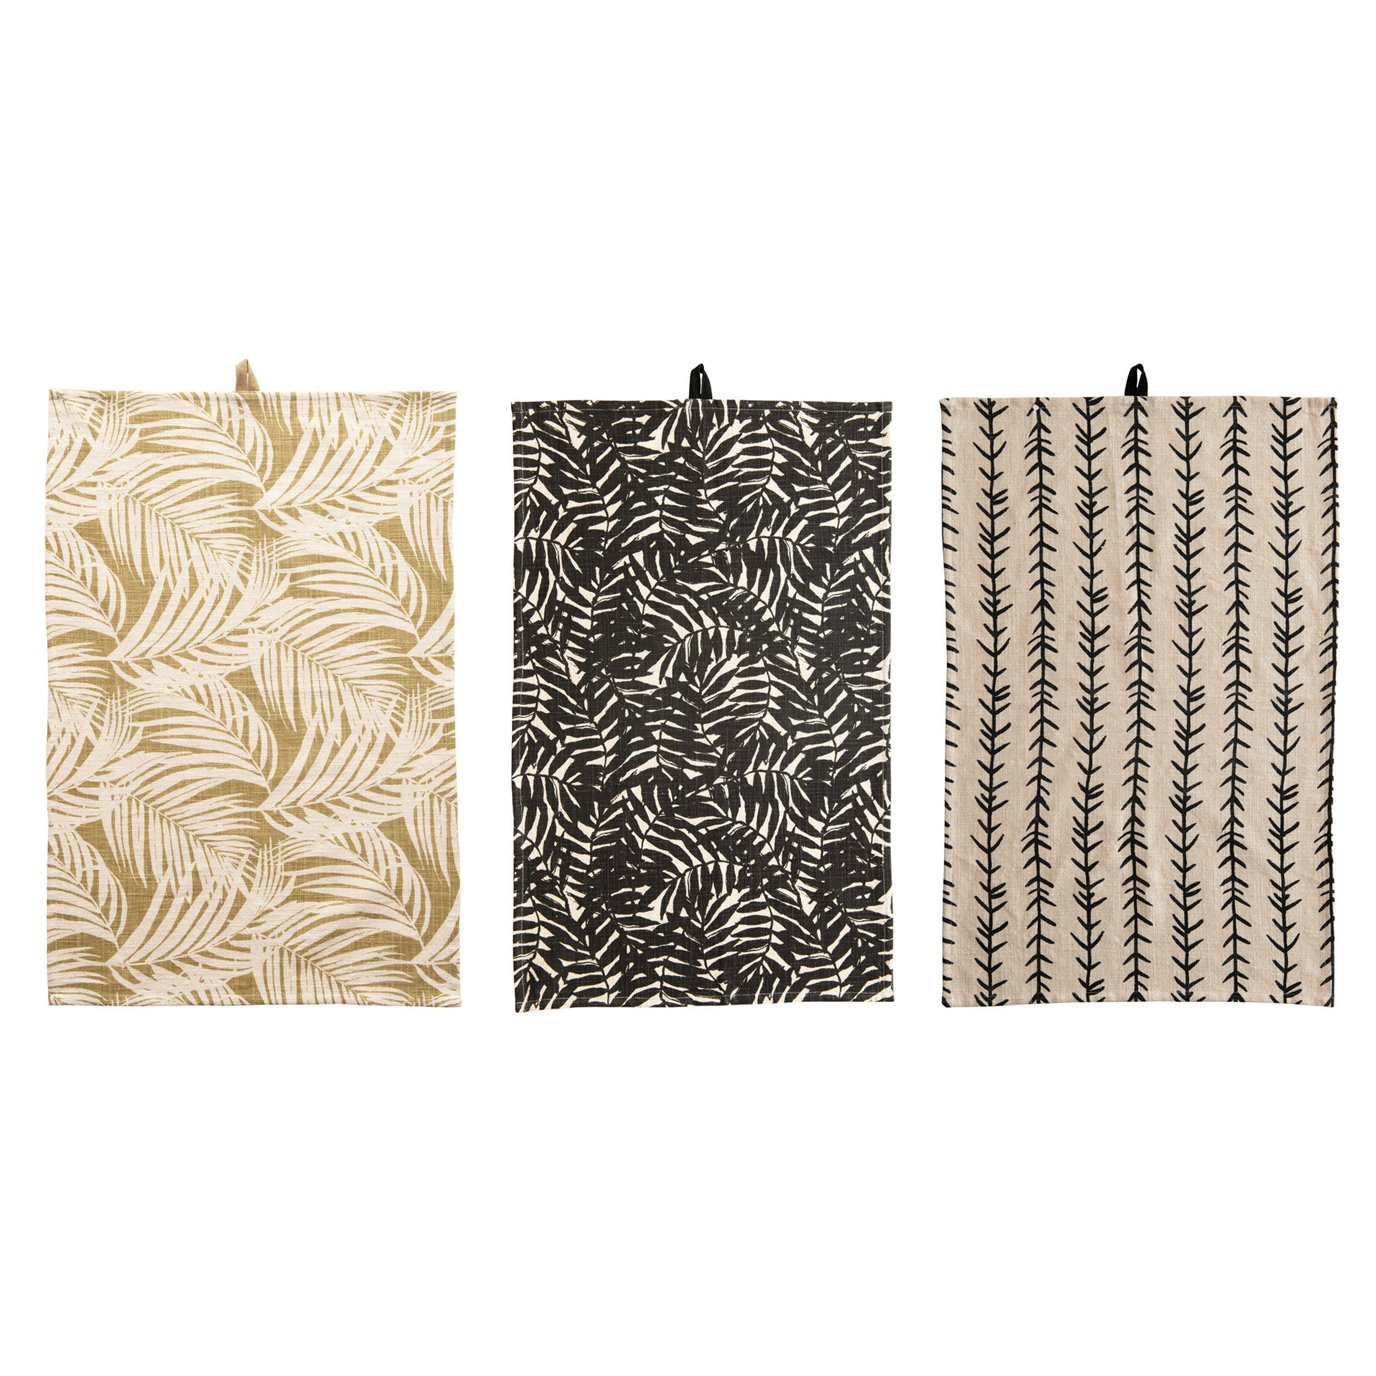 Cotton Printed Tea Towels, 3 Styles ©